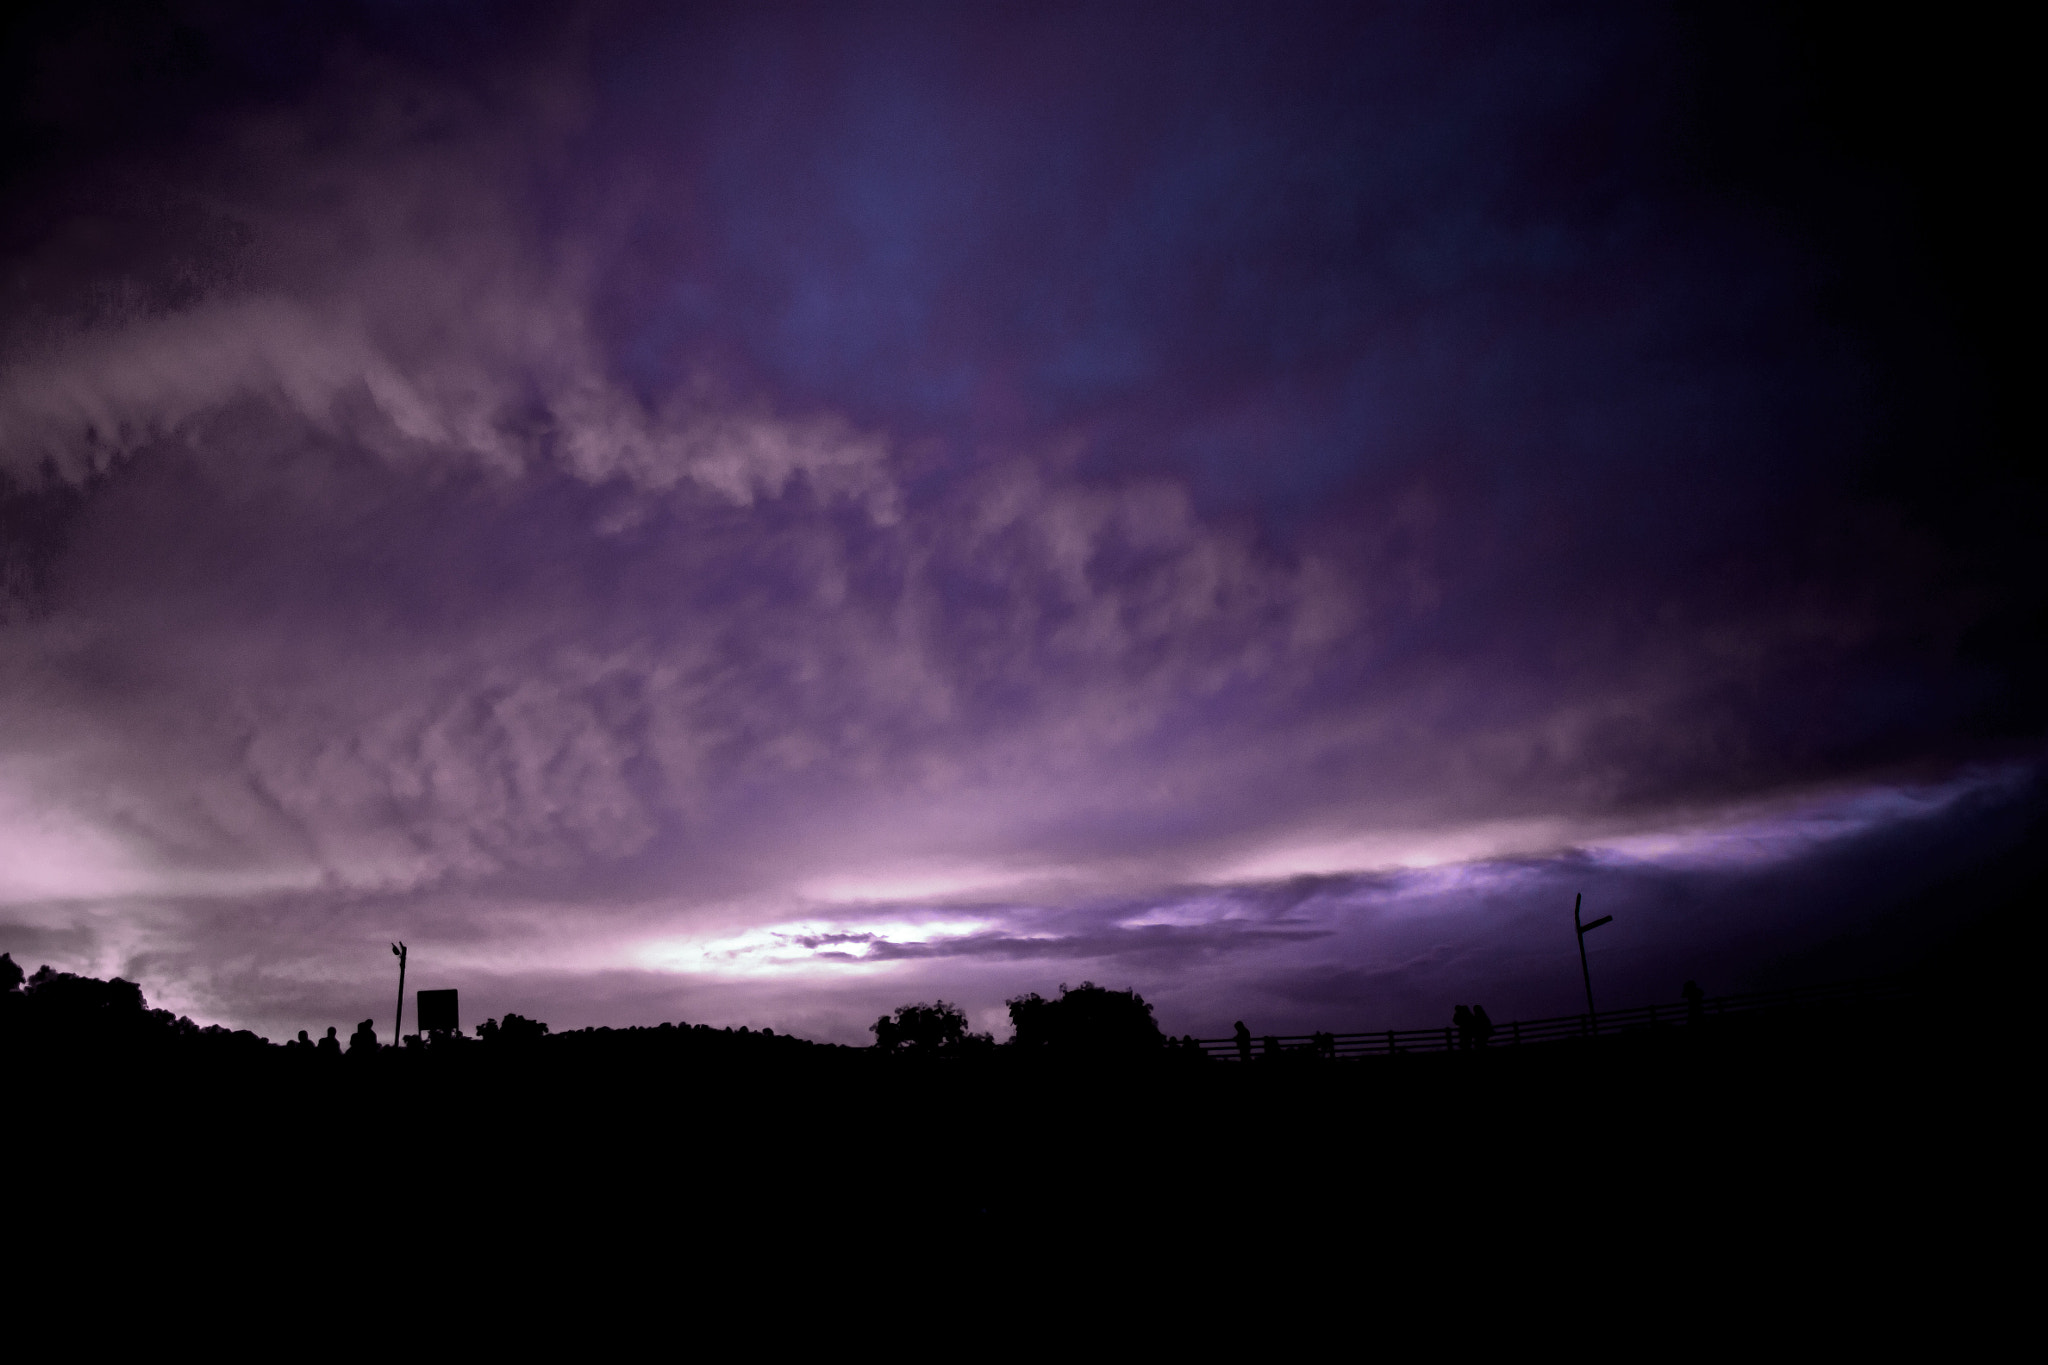 Photograph Darkness is coming by Darshan Kansara on 500px